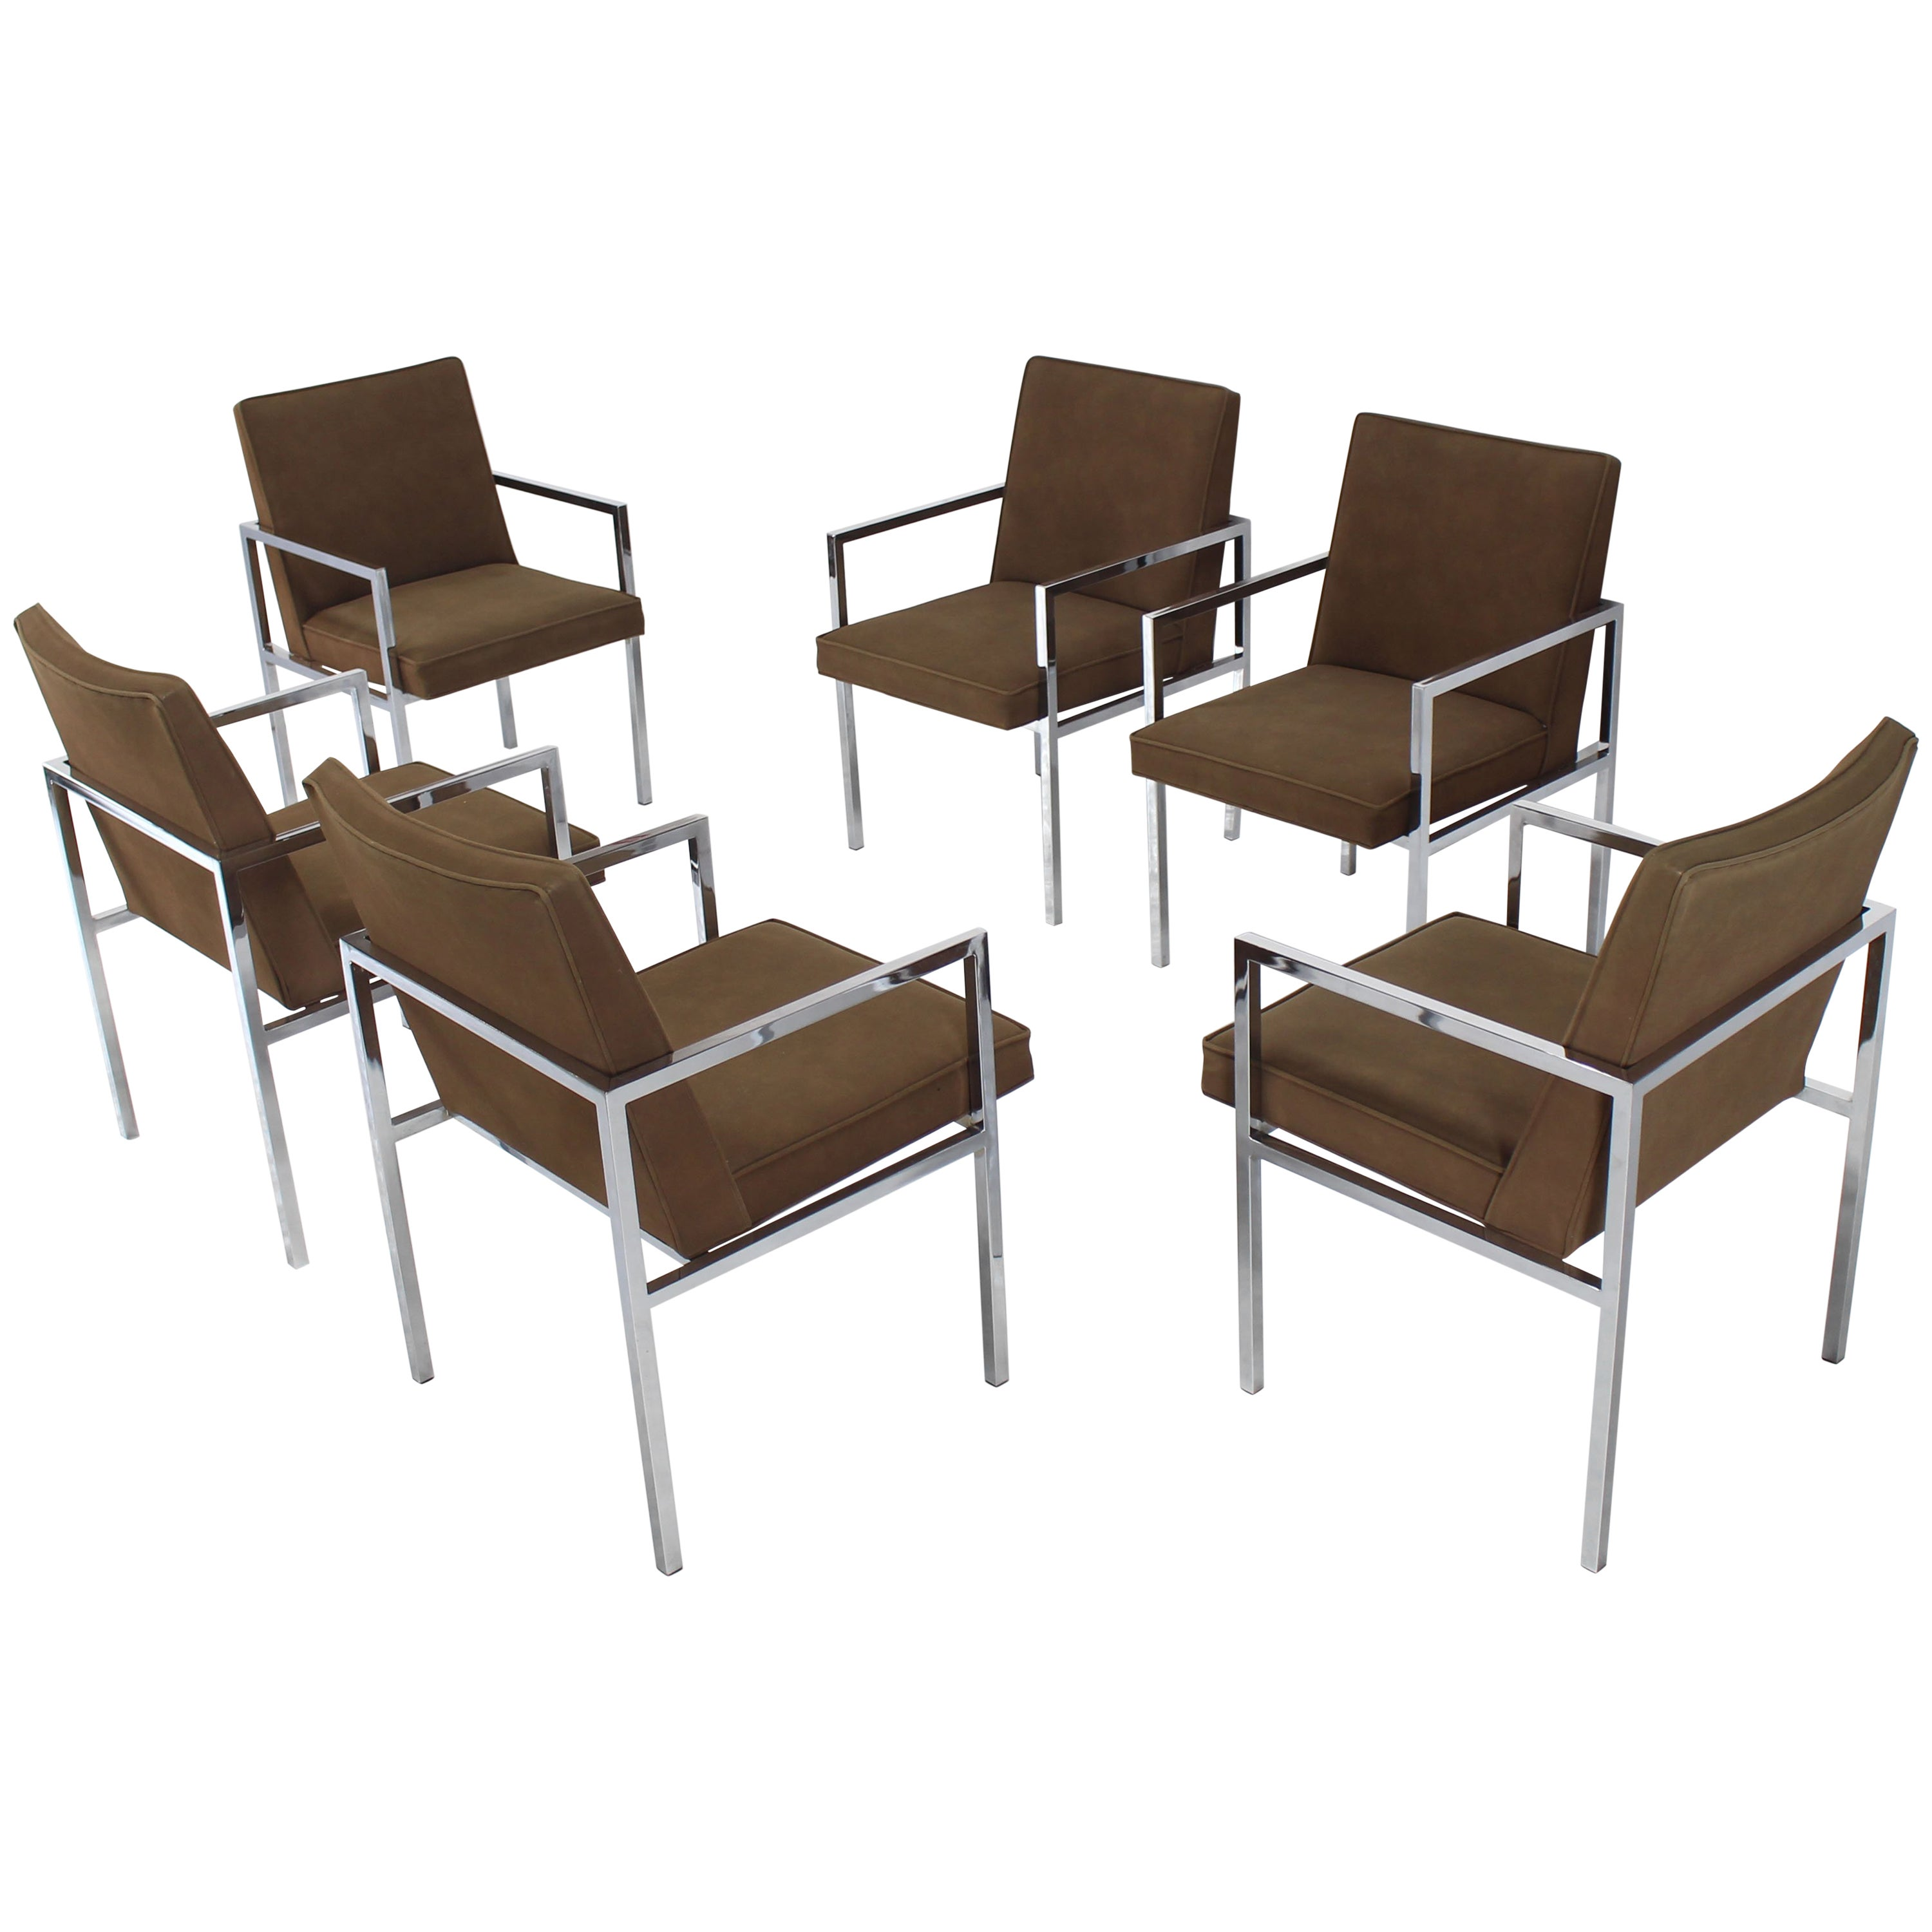 Set of Six Chrome Mid-Century Modern Dining Chairs with Arm Milo Baughman Style